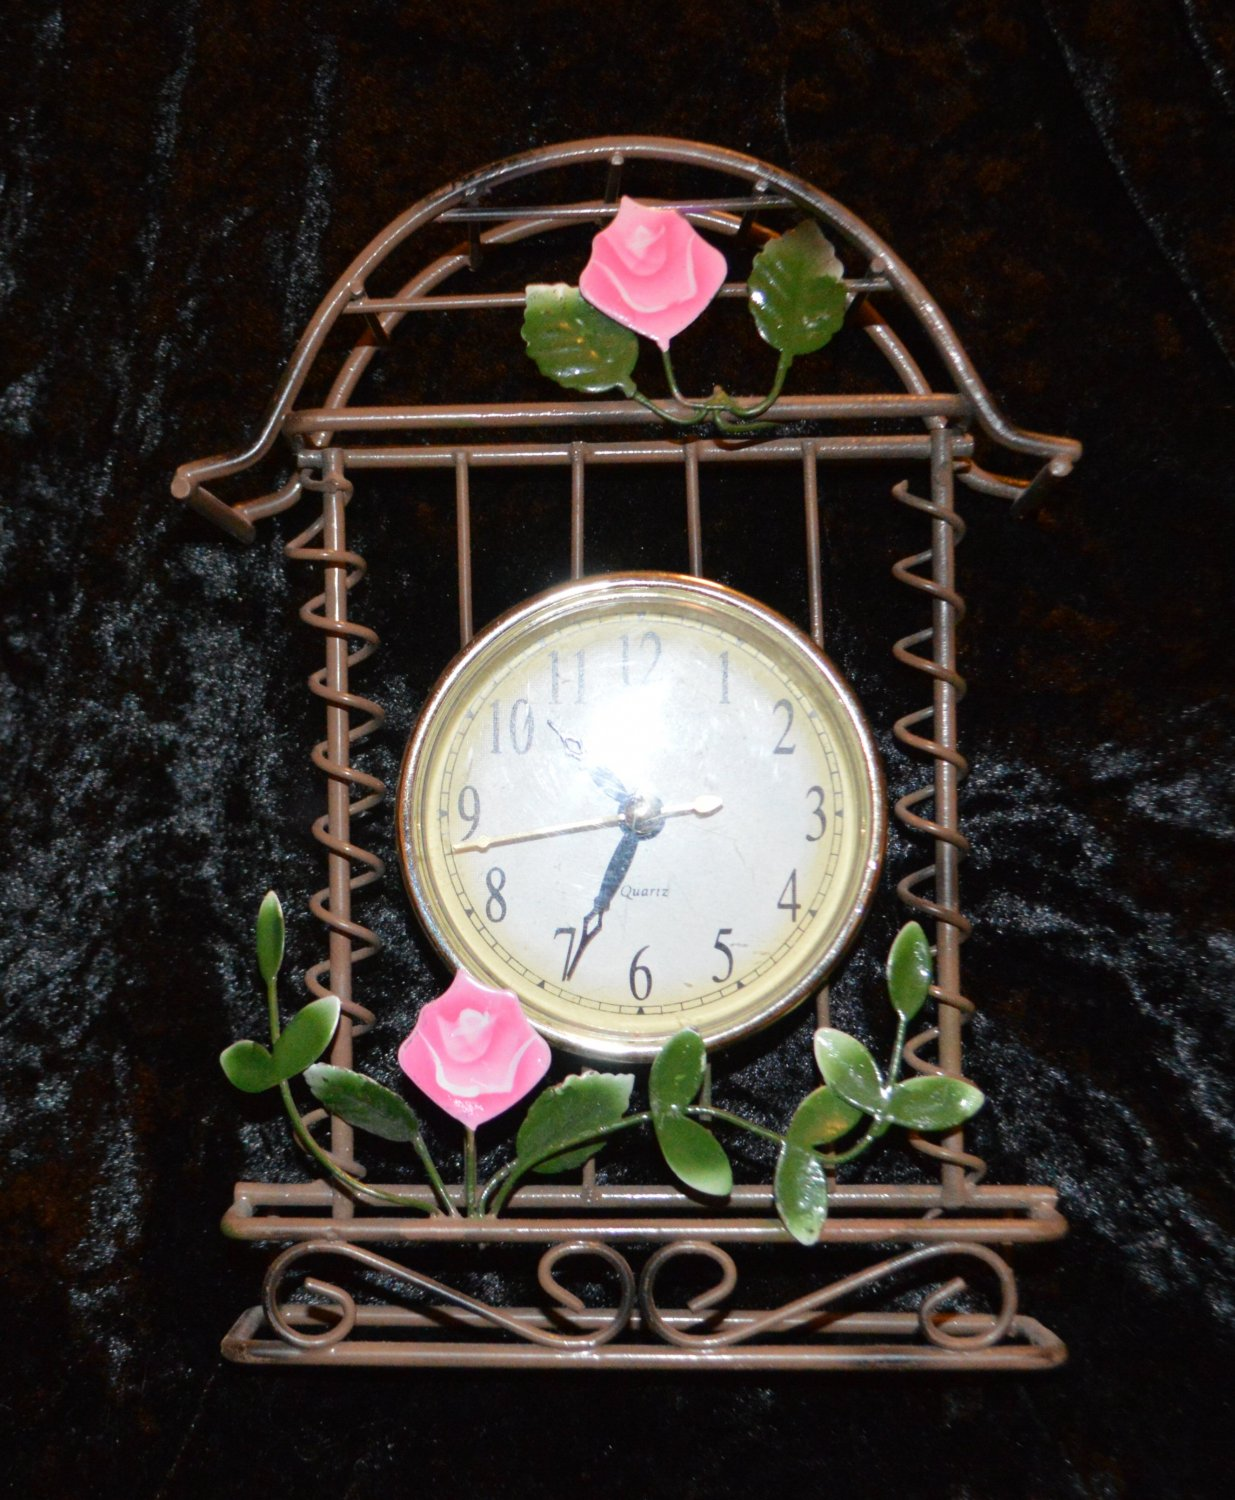 Tianguan Vintage Quartz Clock Garden Wire Design Kitchen Shelf Sun room